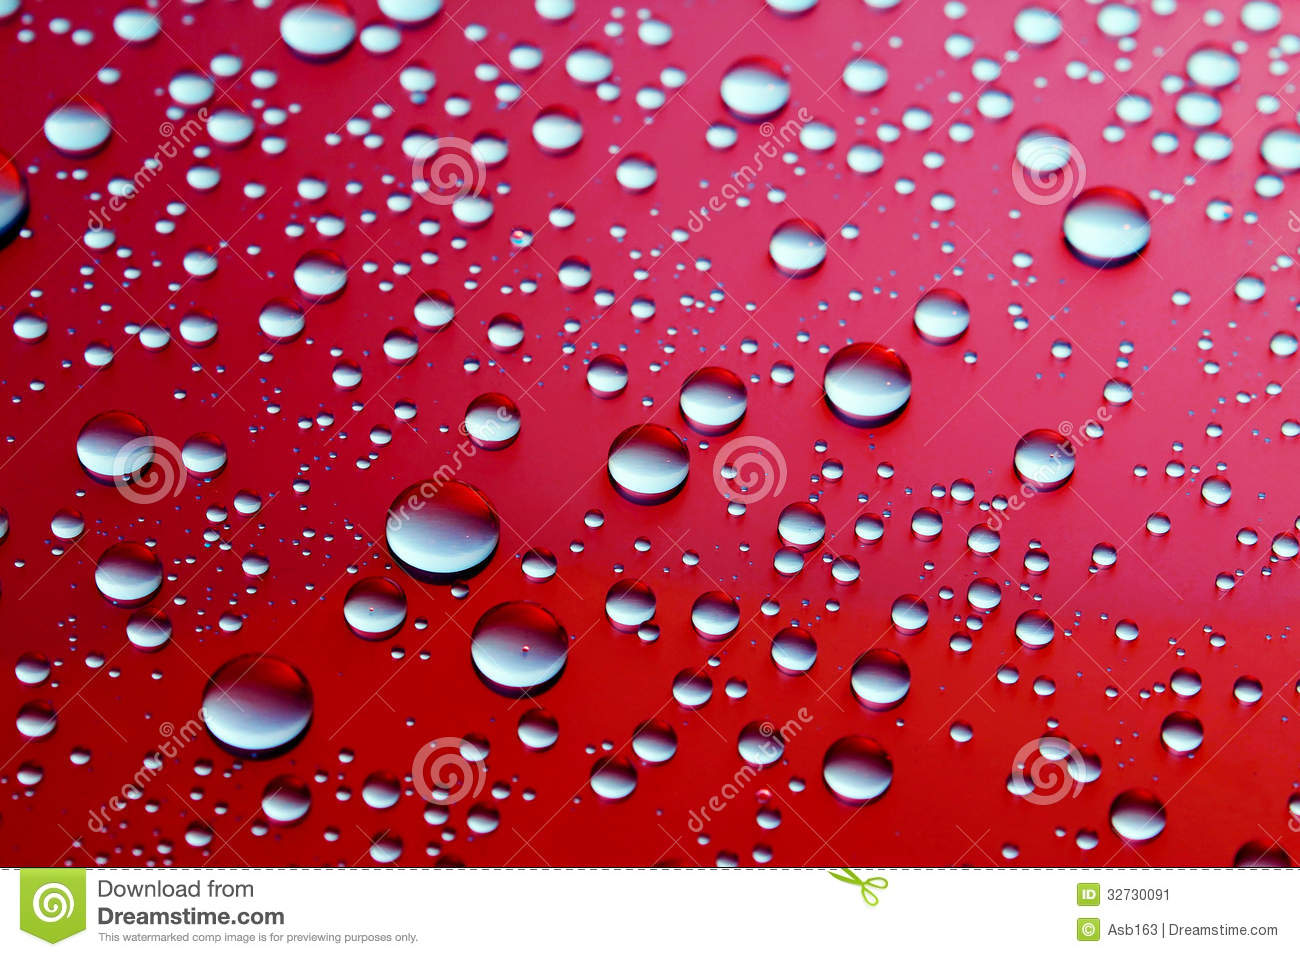 drops of water on a red background stock image